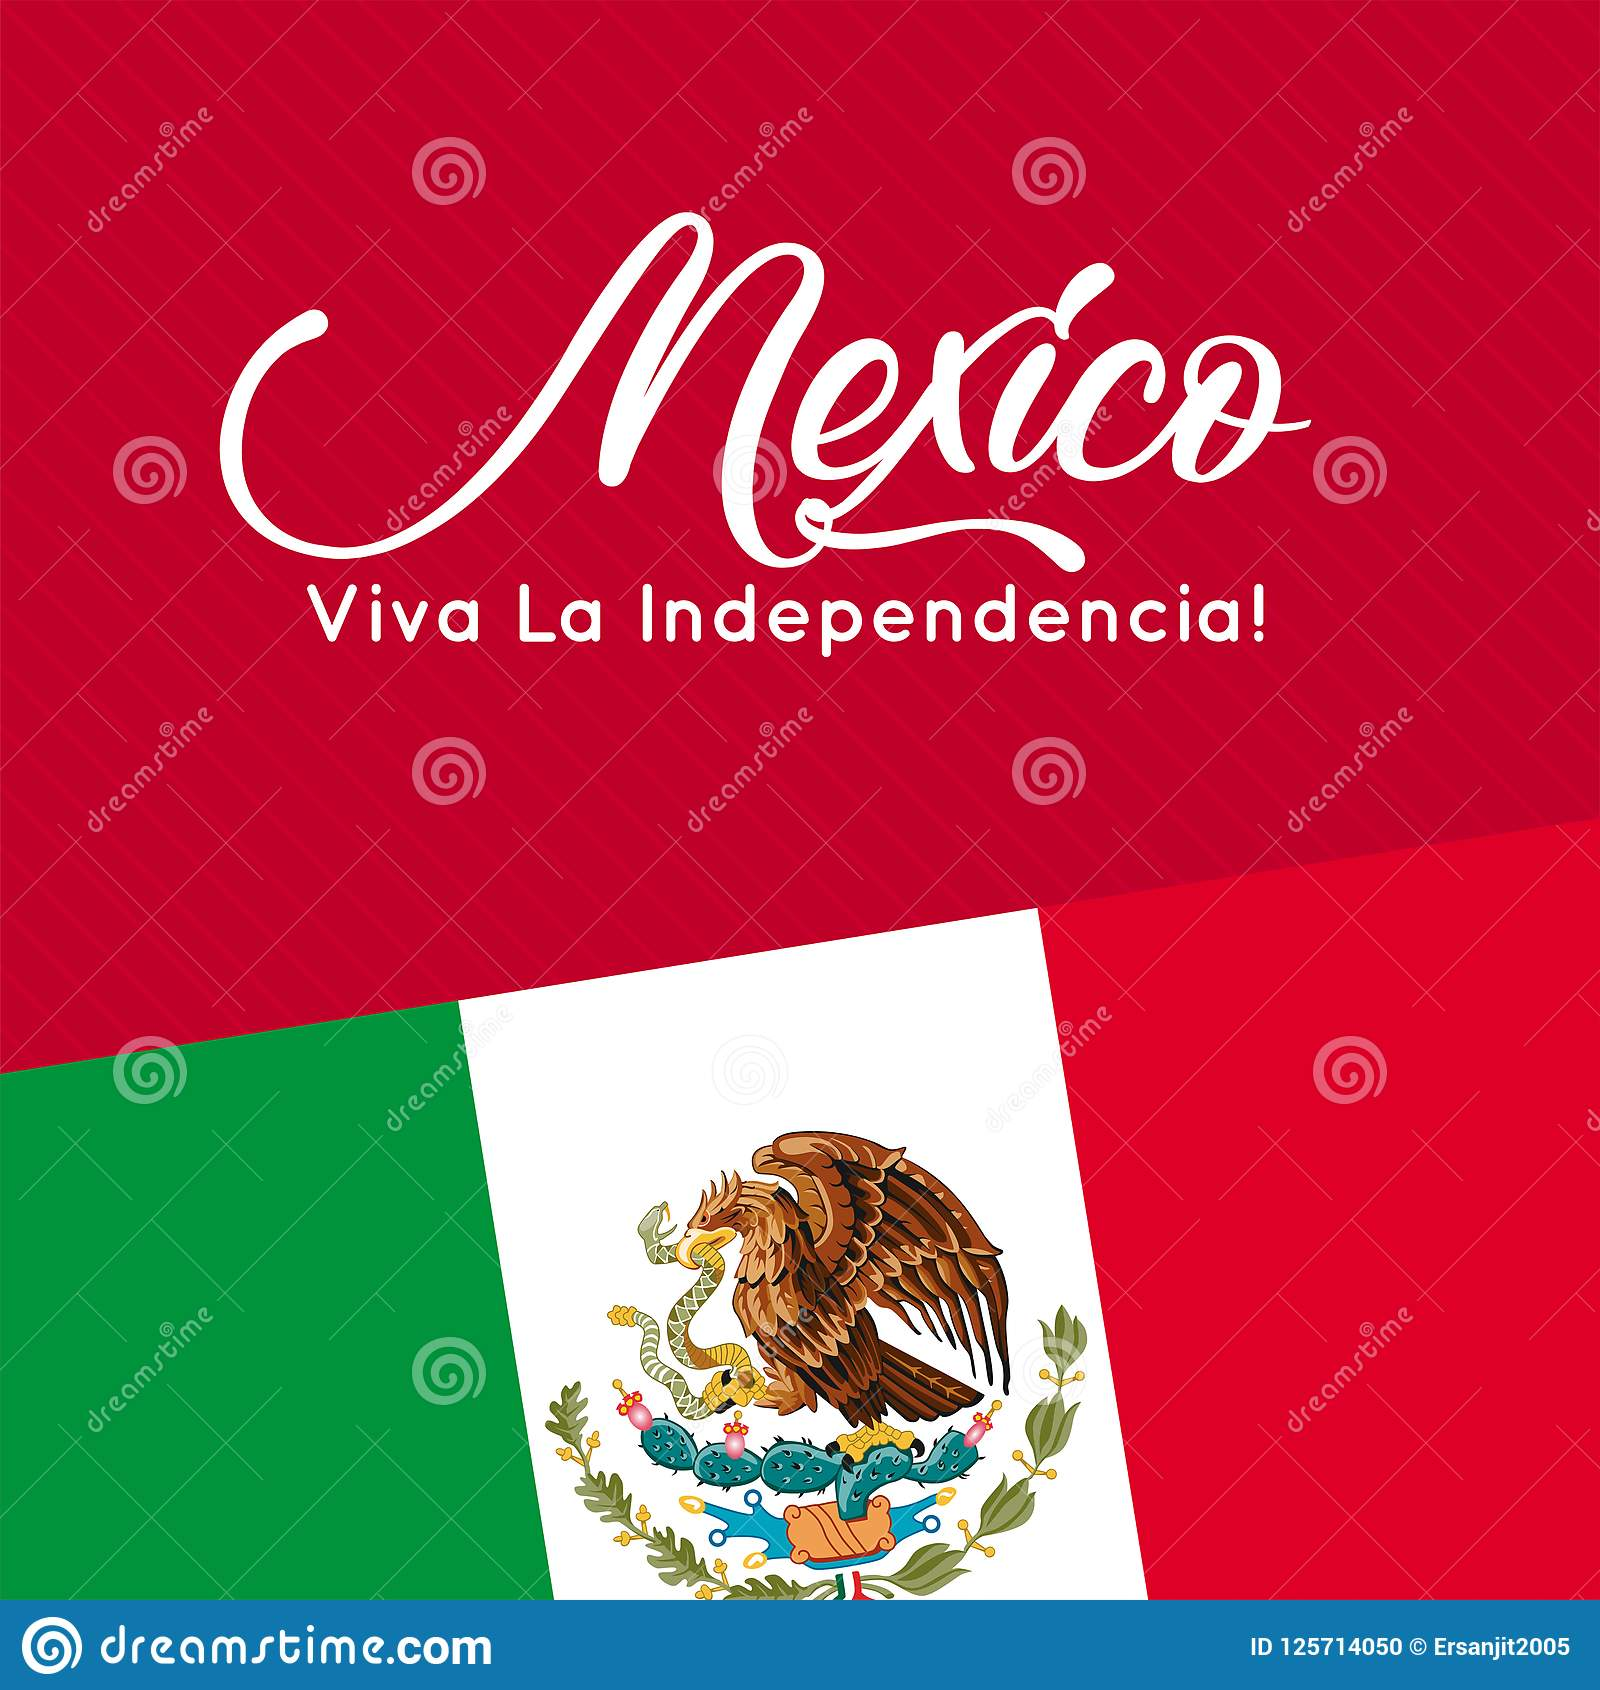 Viva mexico traditional mexican phrase holiday stock illustration download viva mexico traditional mexican phrase holiday stock illustration illustration of greeting cinco m4hsunfo